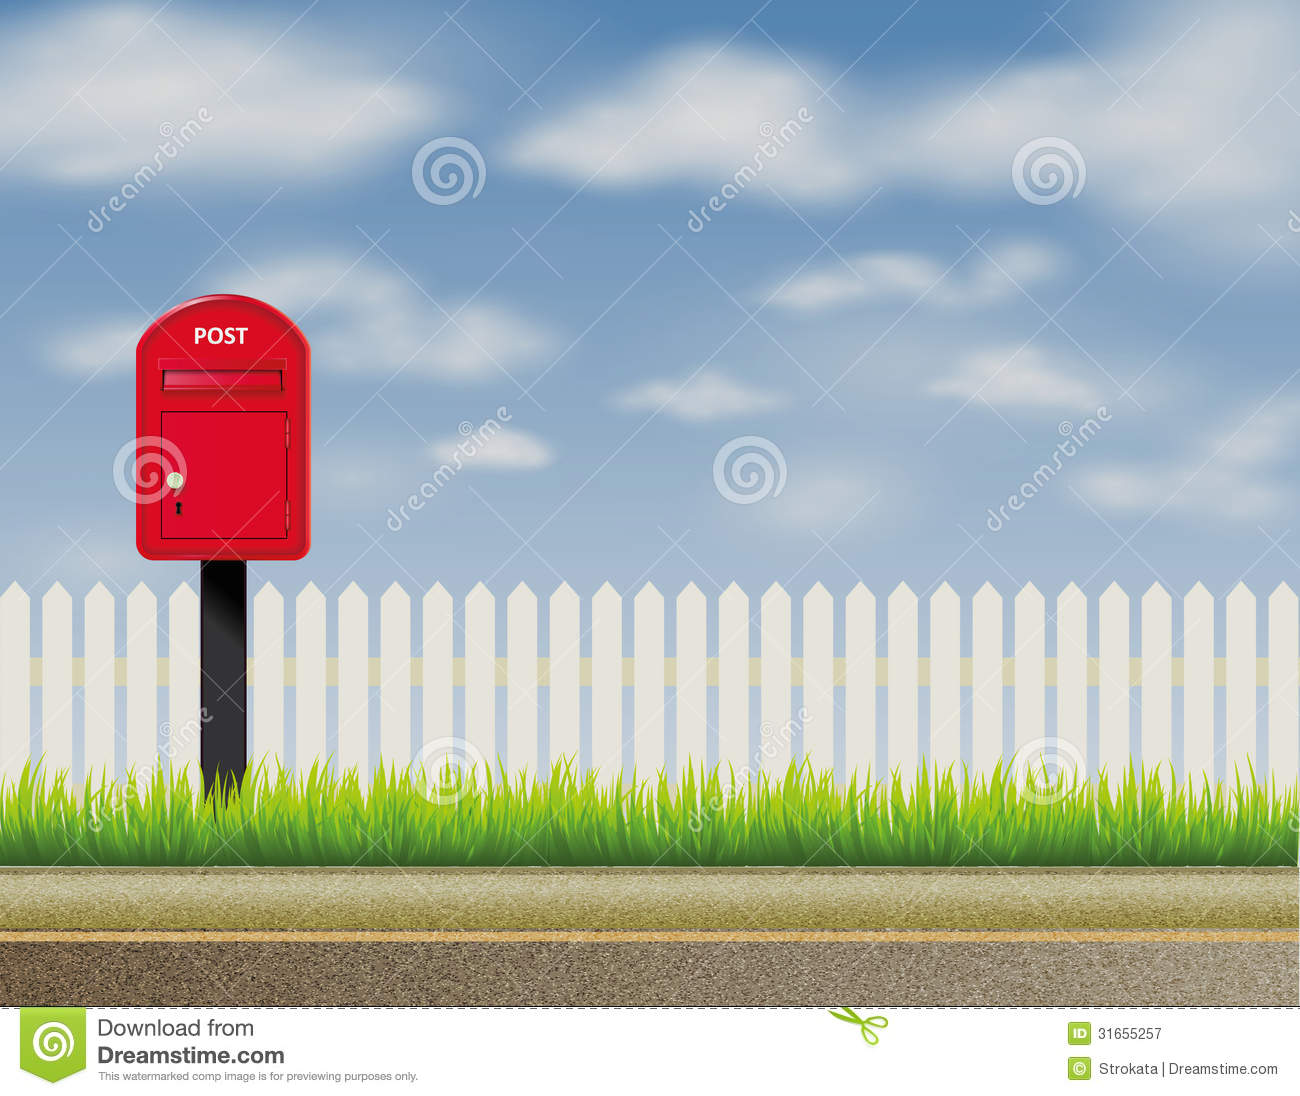 Design Of Abstract English Uk Letter Box Mailbox Royalty